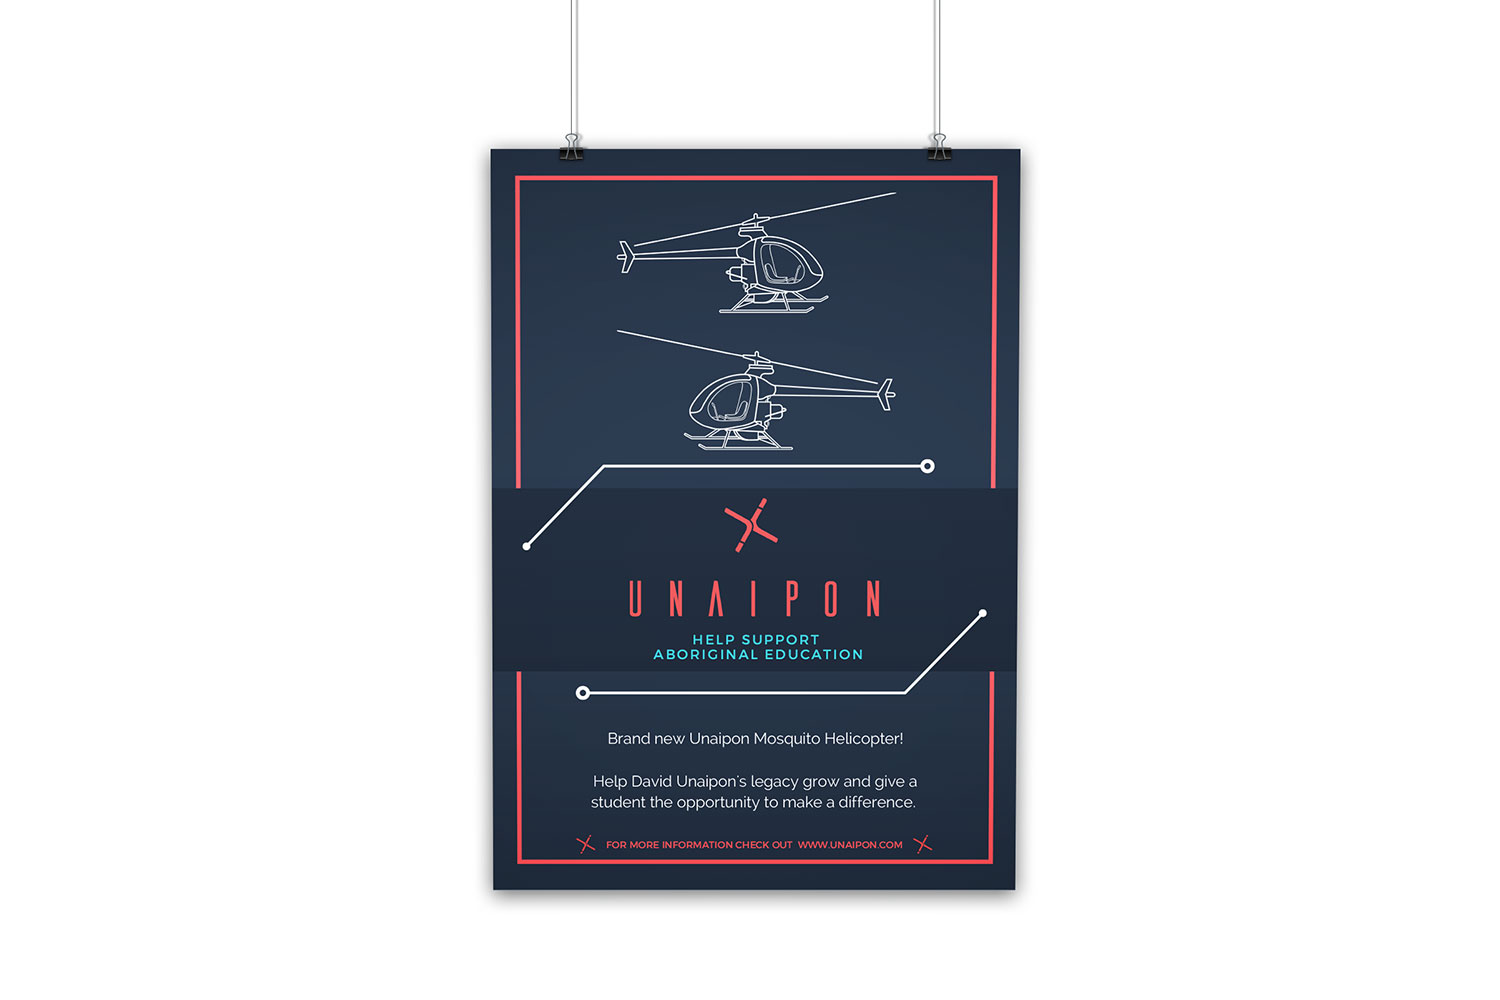 Unaipon Helicopter poster